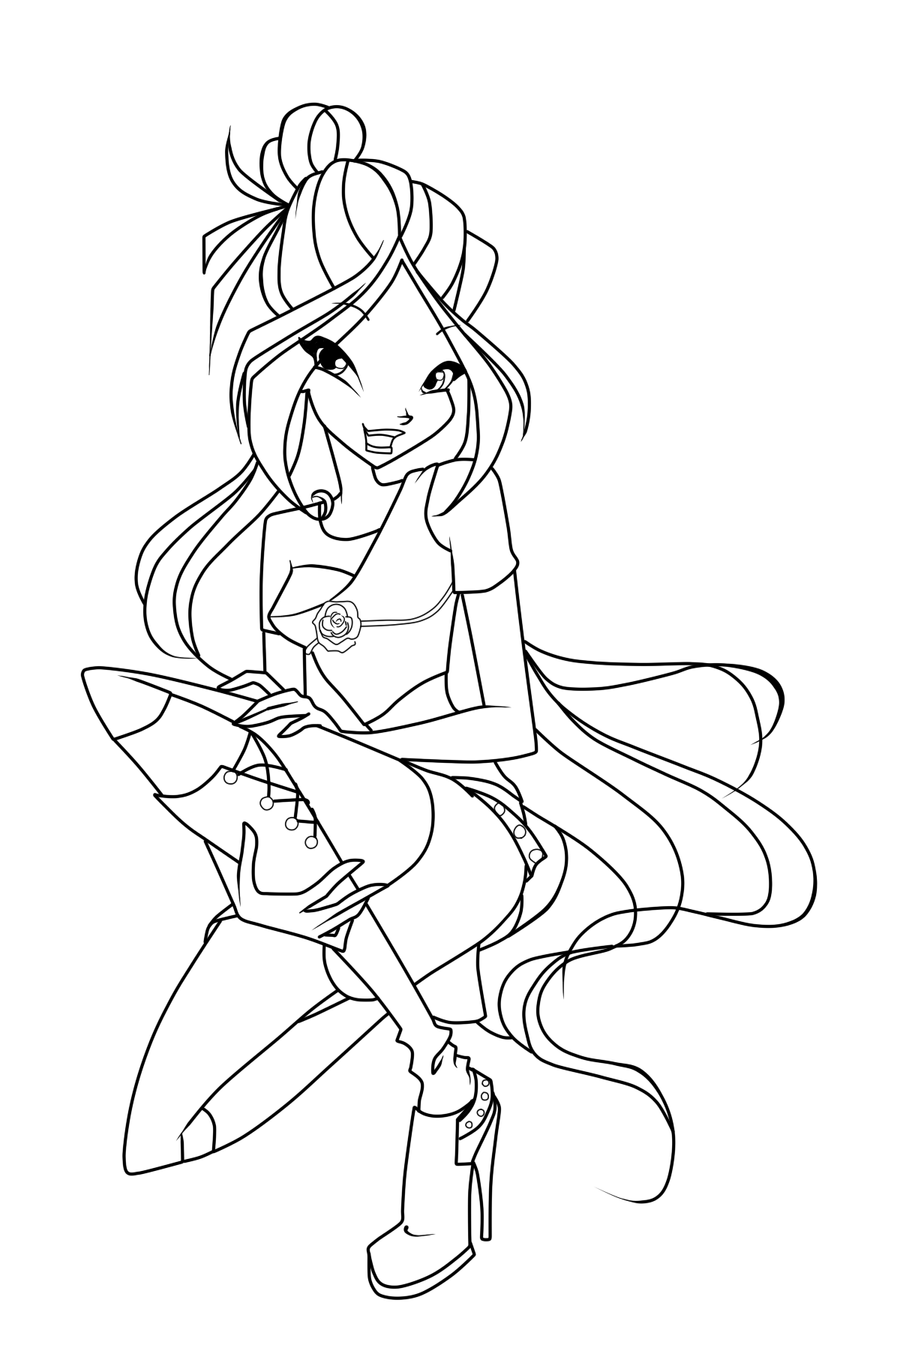 winx club coloring pages flora winx club flora charmix coloring pages sketch coloring page pages club winx flora coloring